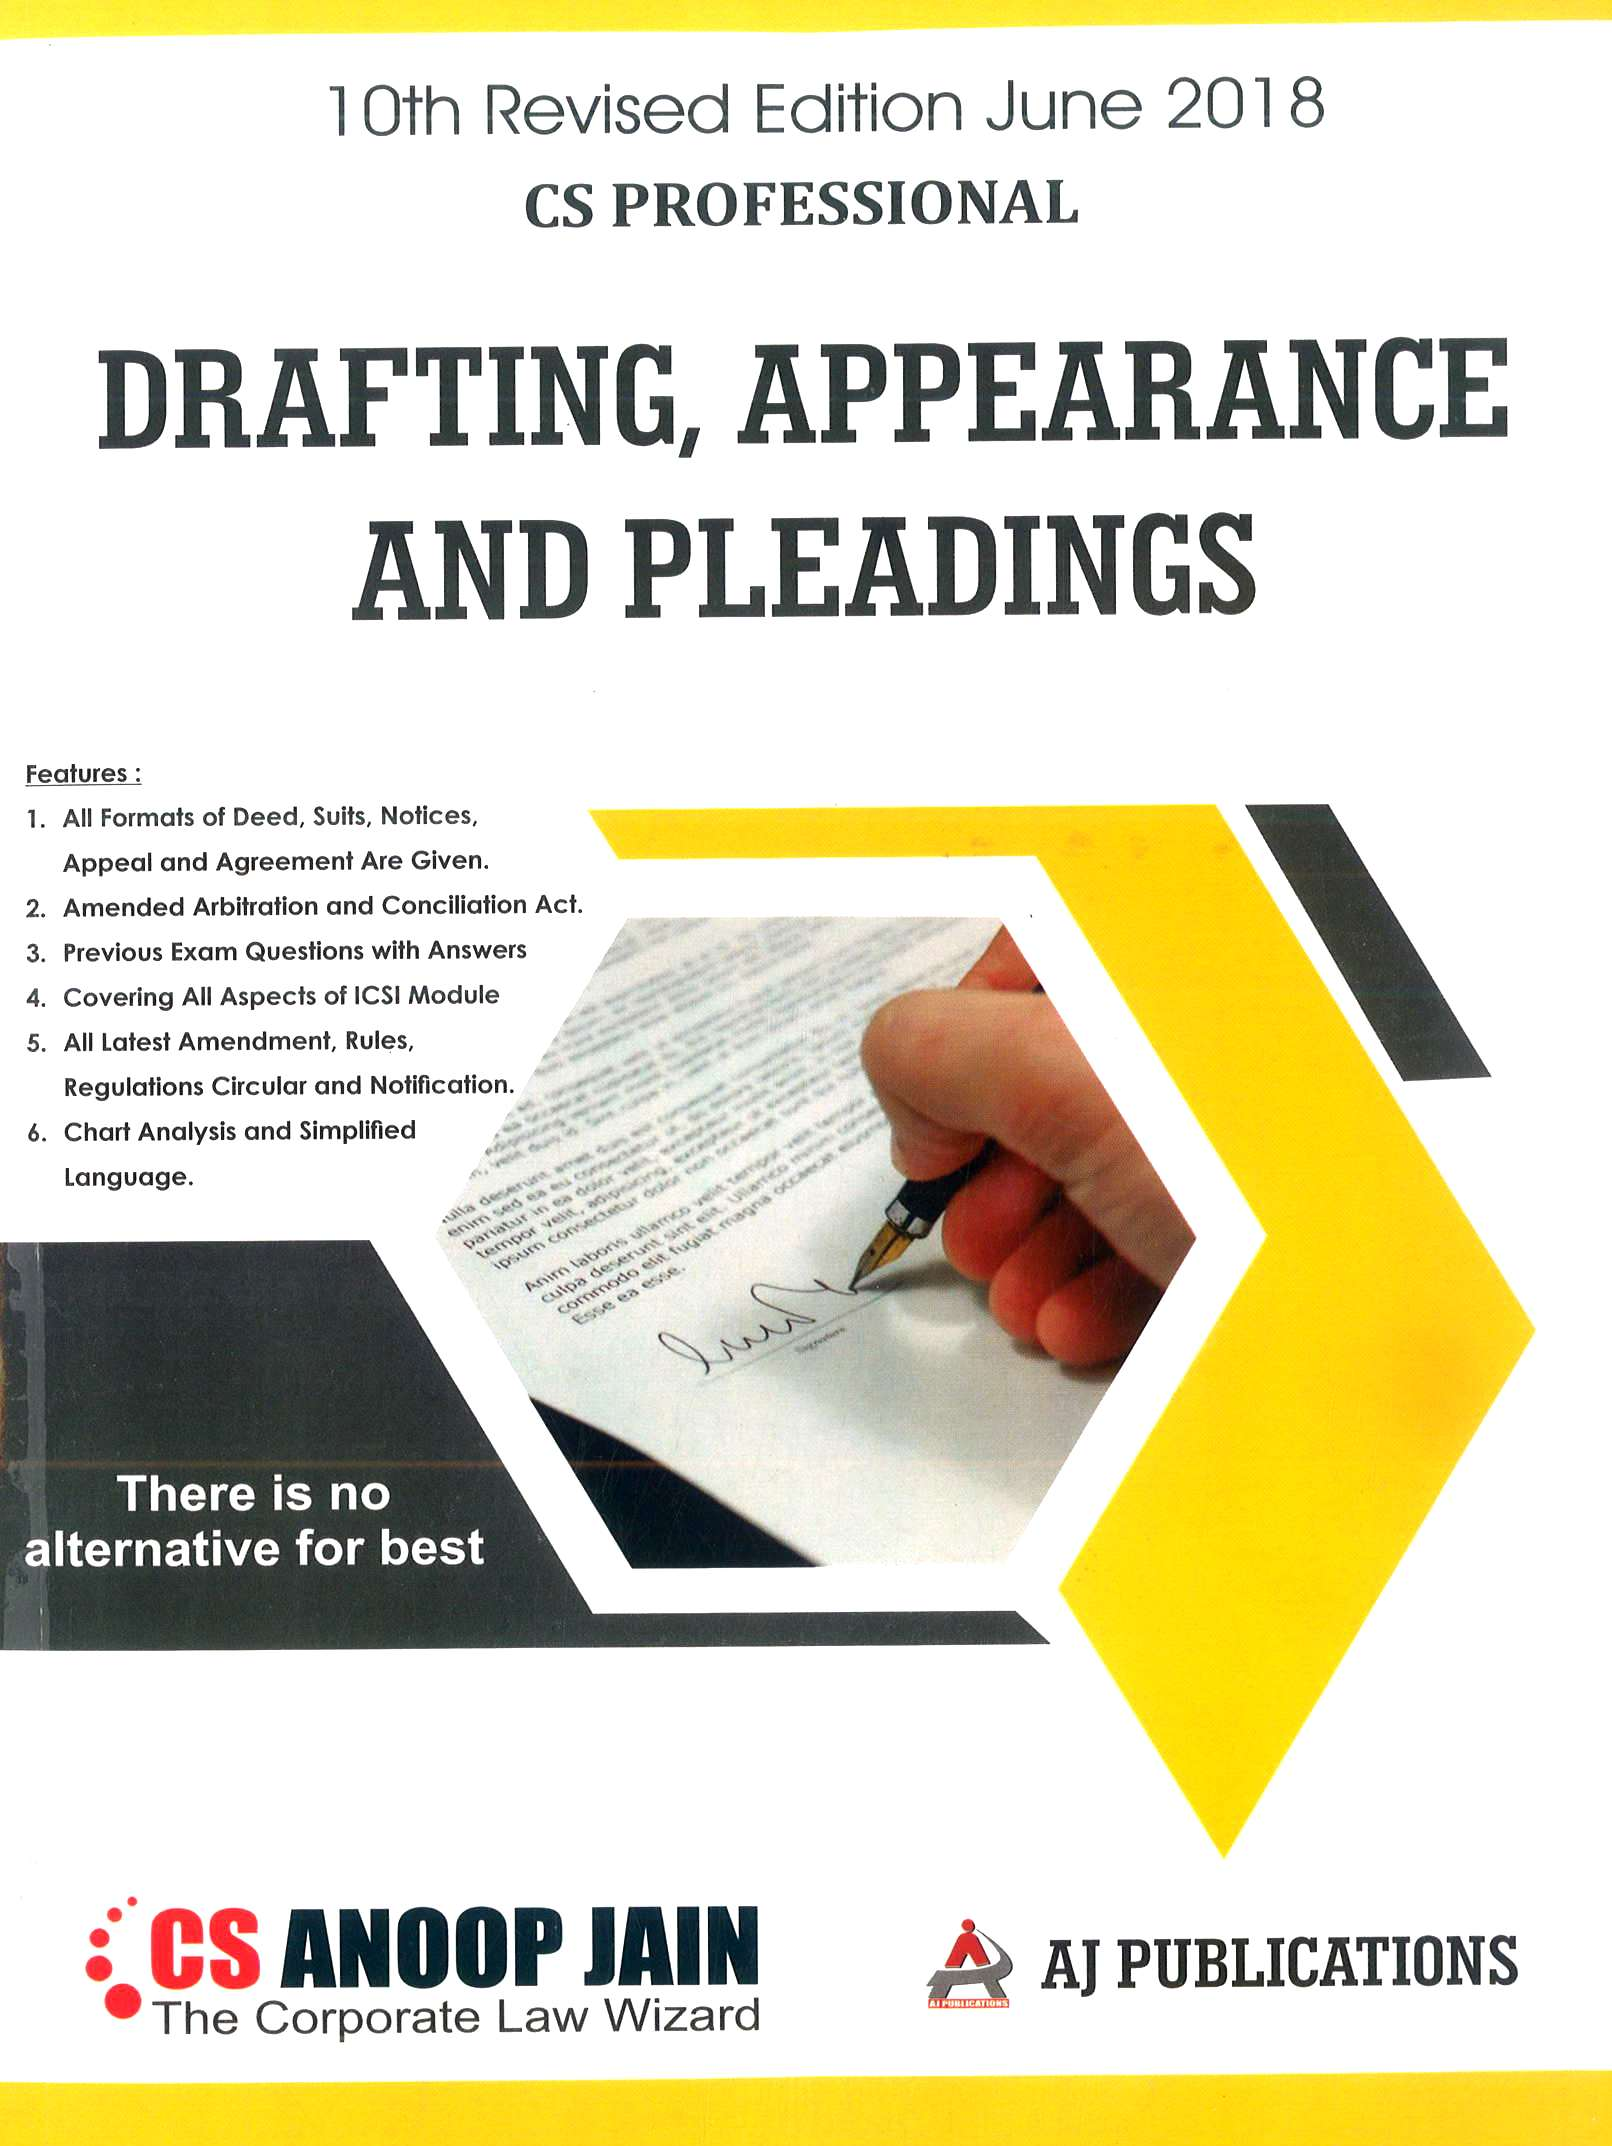 AJ Publication Drafting Appearance and Pleadings for June 2018 Exam for CS Professional by CS Anoop Jain (AJ Publishing)  10th Edition 2018